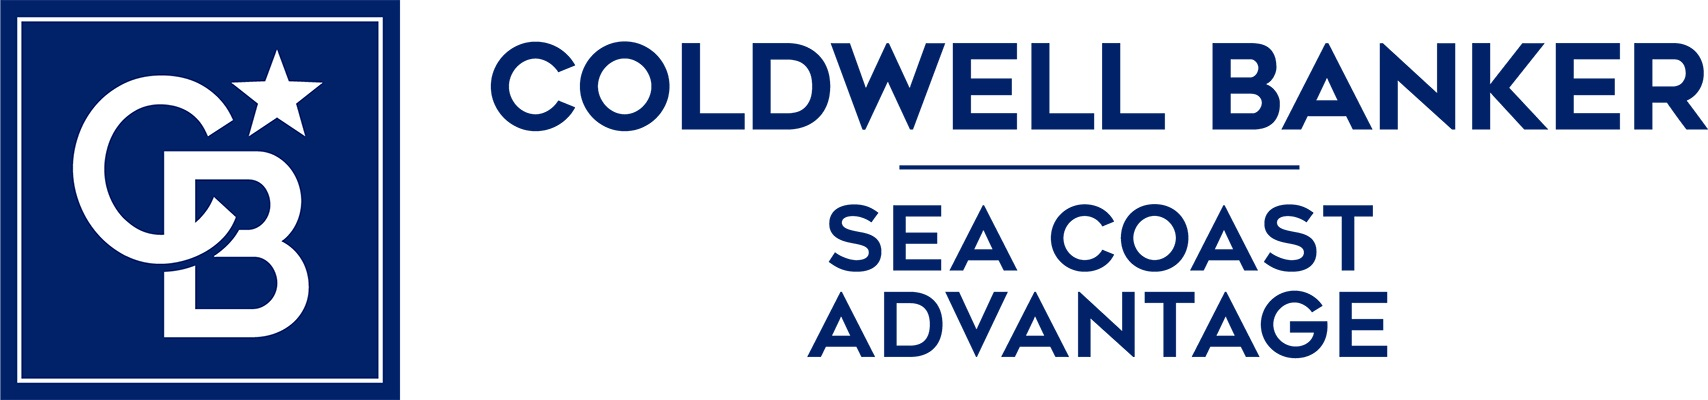 Corrin Dial - Coldwell Banker Sea Coast Advantage Realty Logo